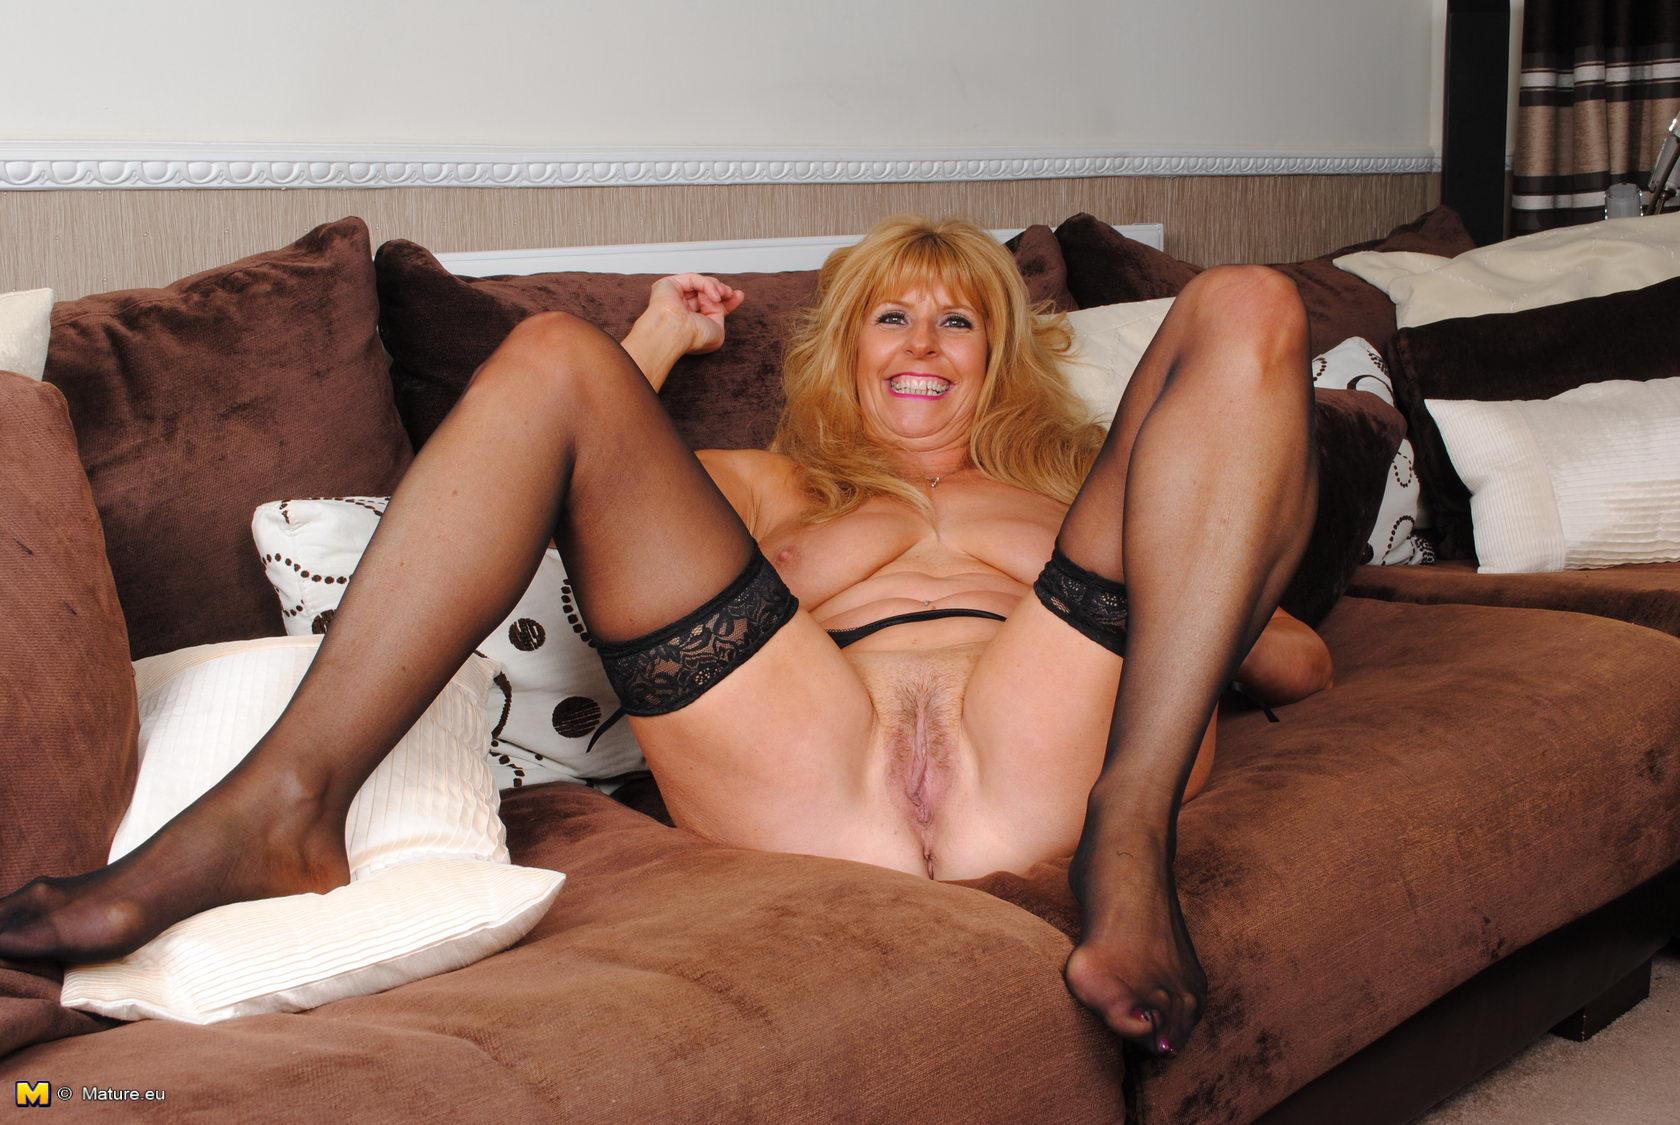 Kelly J - ... picture #9 ...